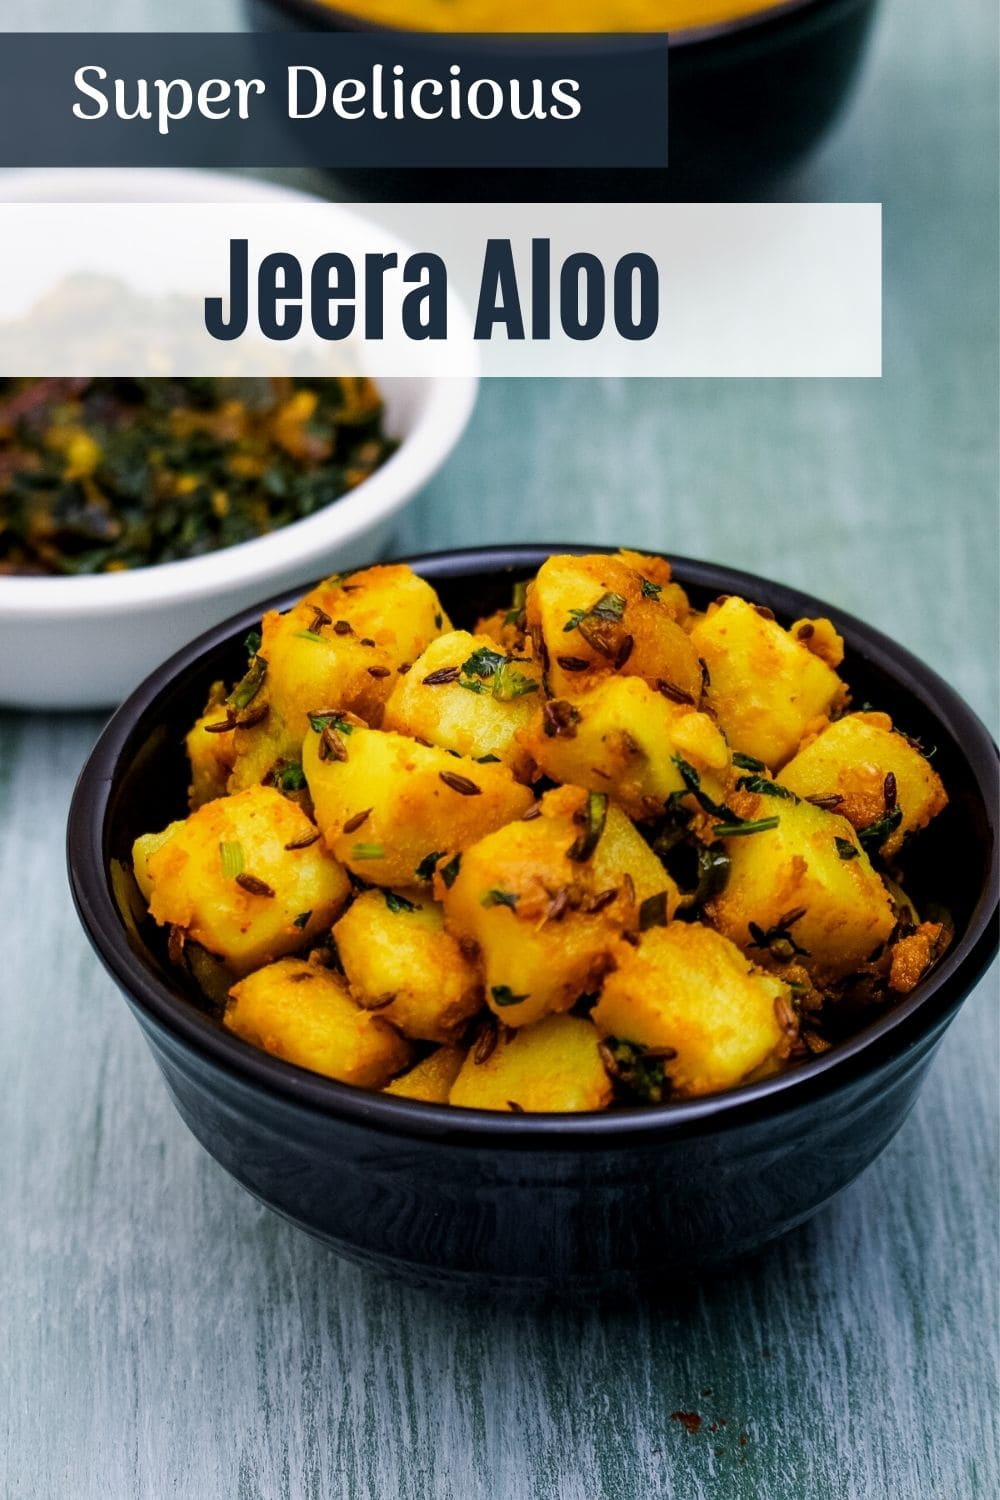 jeera aloo in a black bowl with text on the image for pinterest